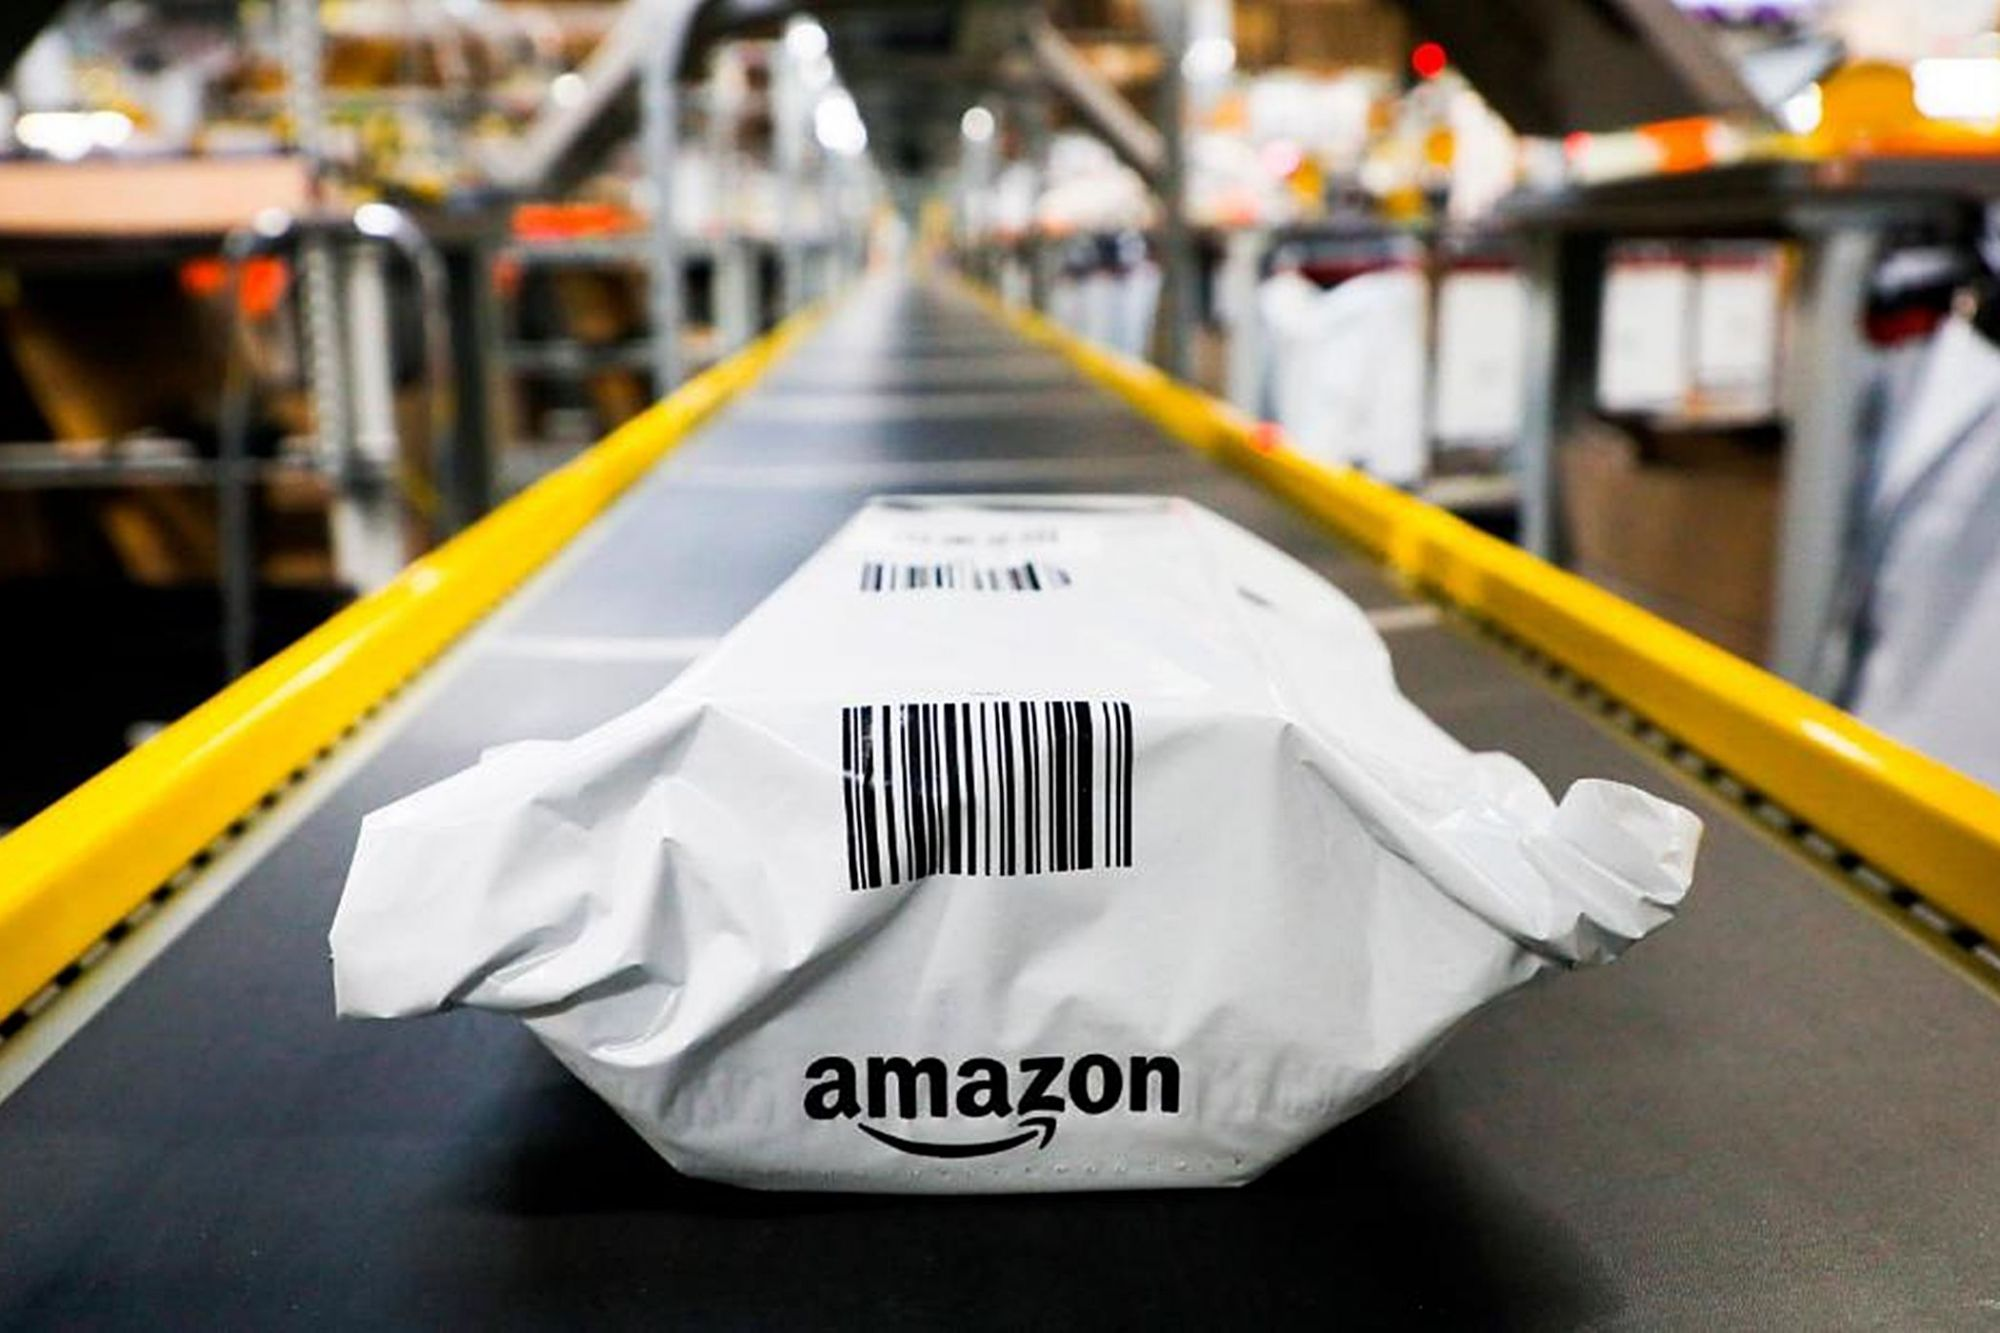 Prime Day 2019: Everything You Need to Know